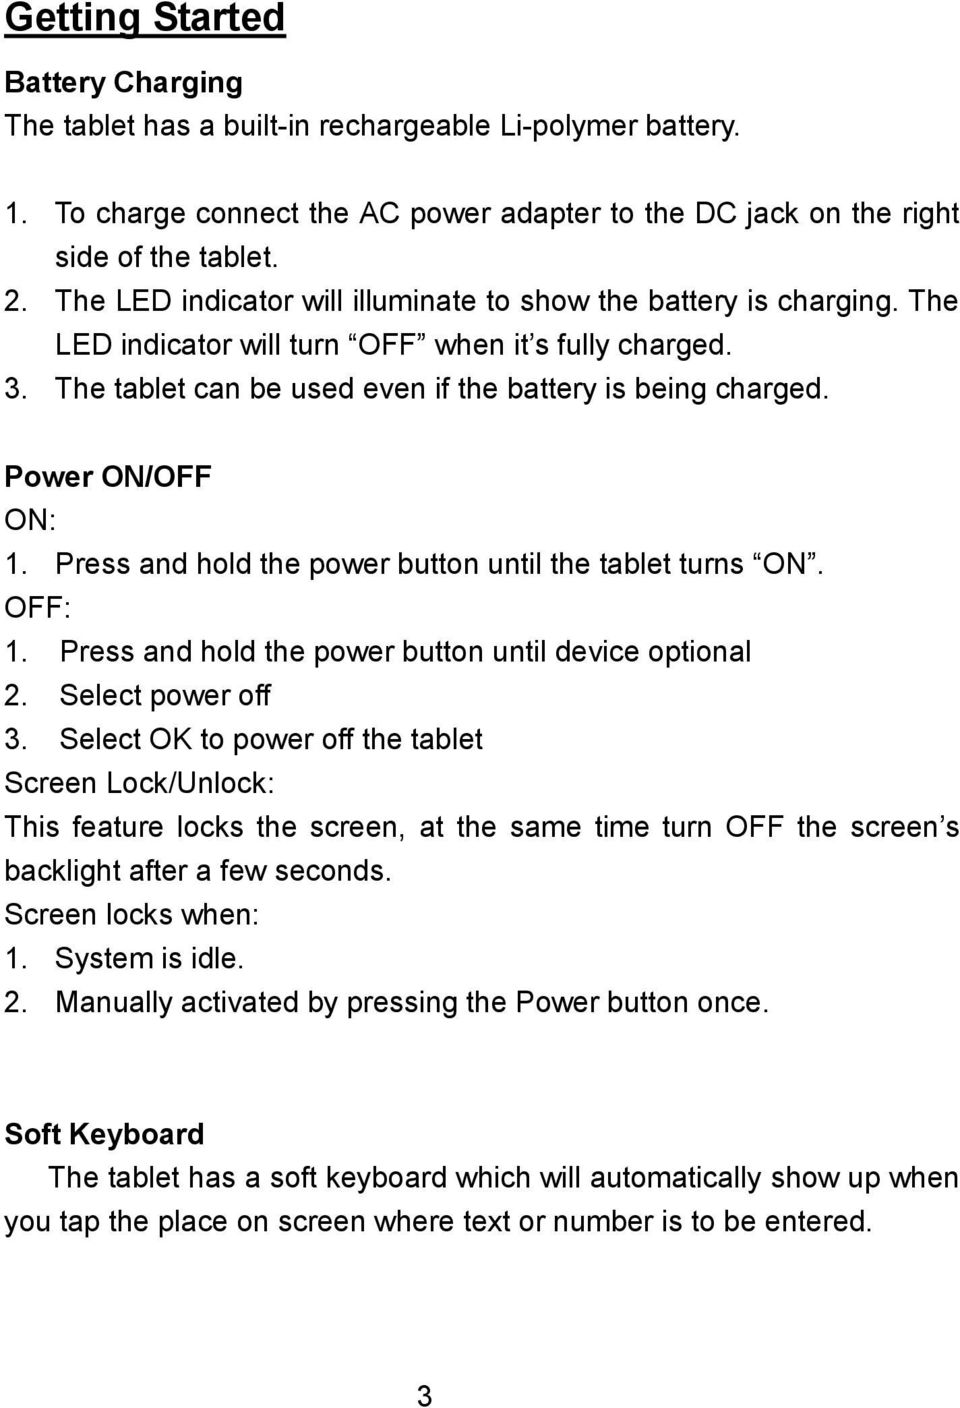 Power ON/OFF ON: 1. Press and hold the power button until the tablet turns ON. OFF: 1. Press and hold the power button until device optional 2. Select power off 3.